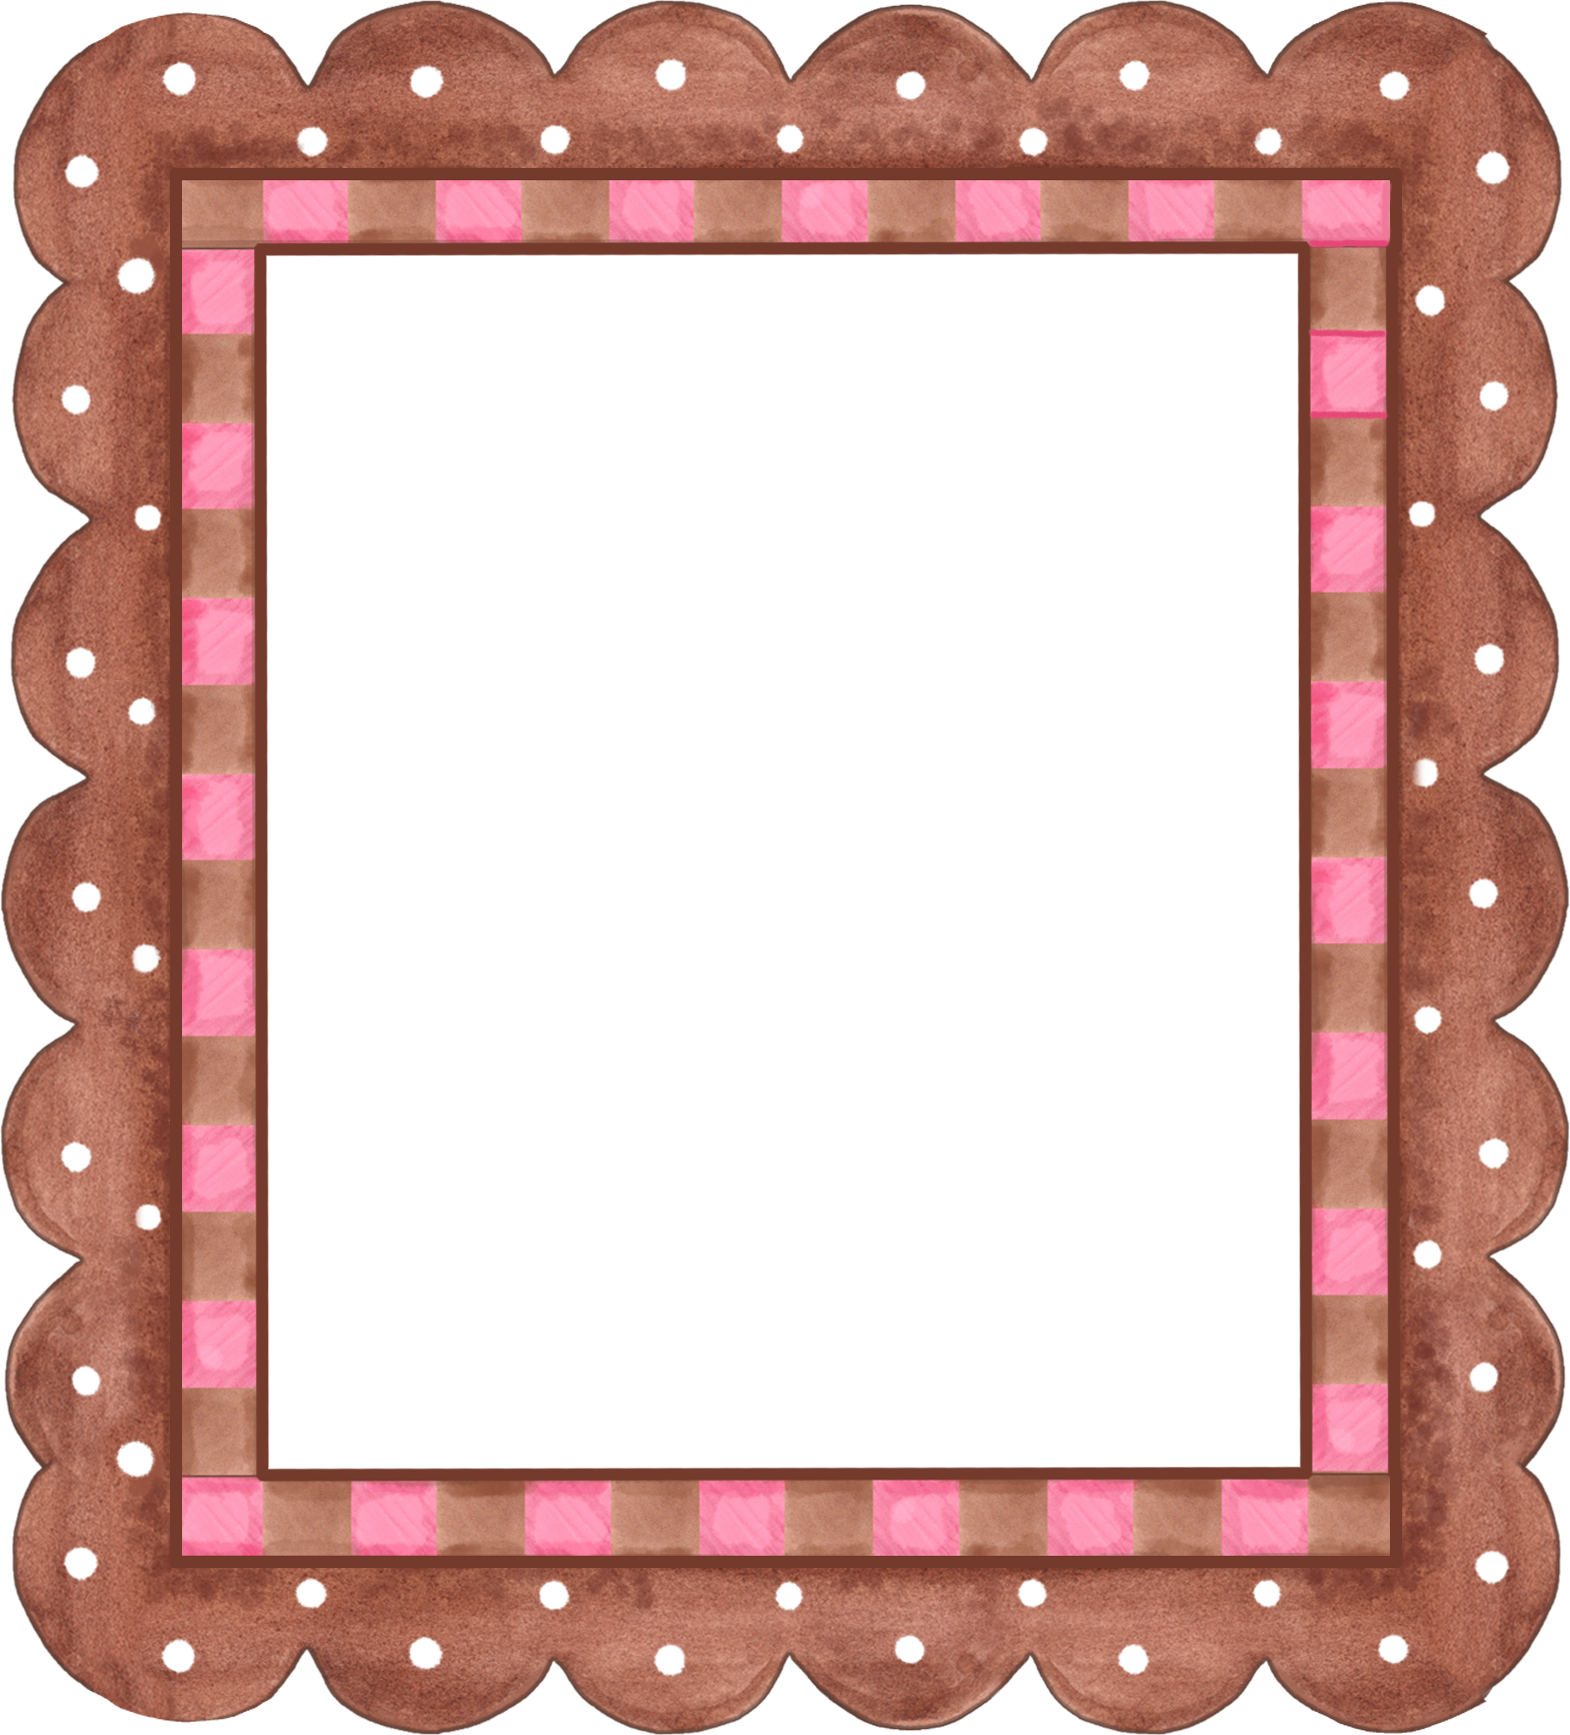 Caratula ms. Quilting clipart quilt frame